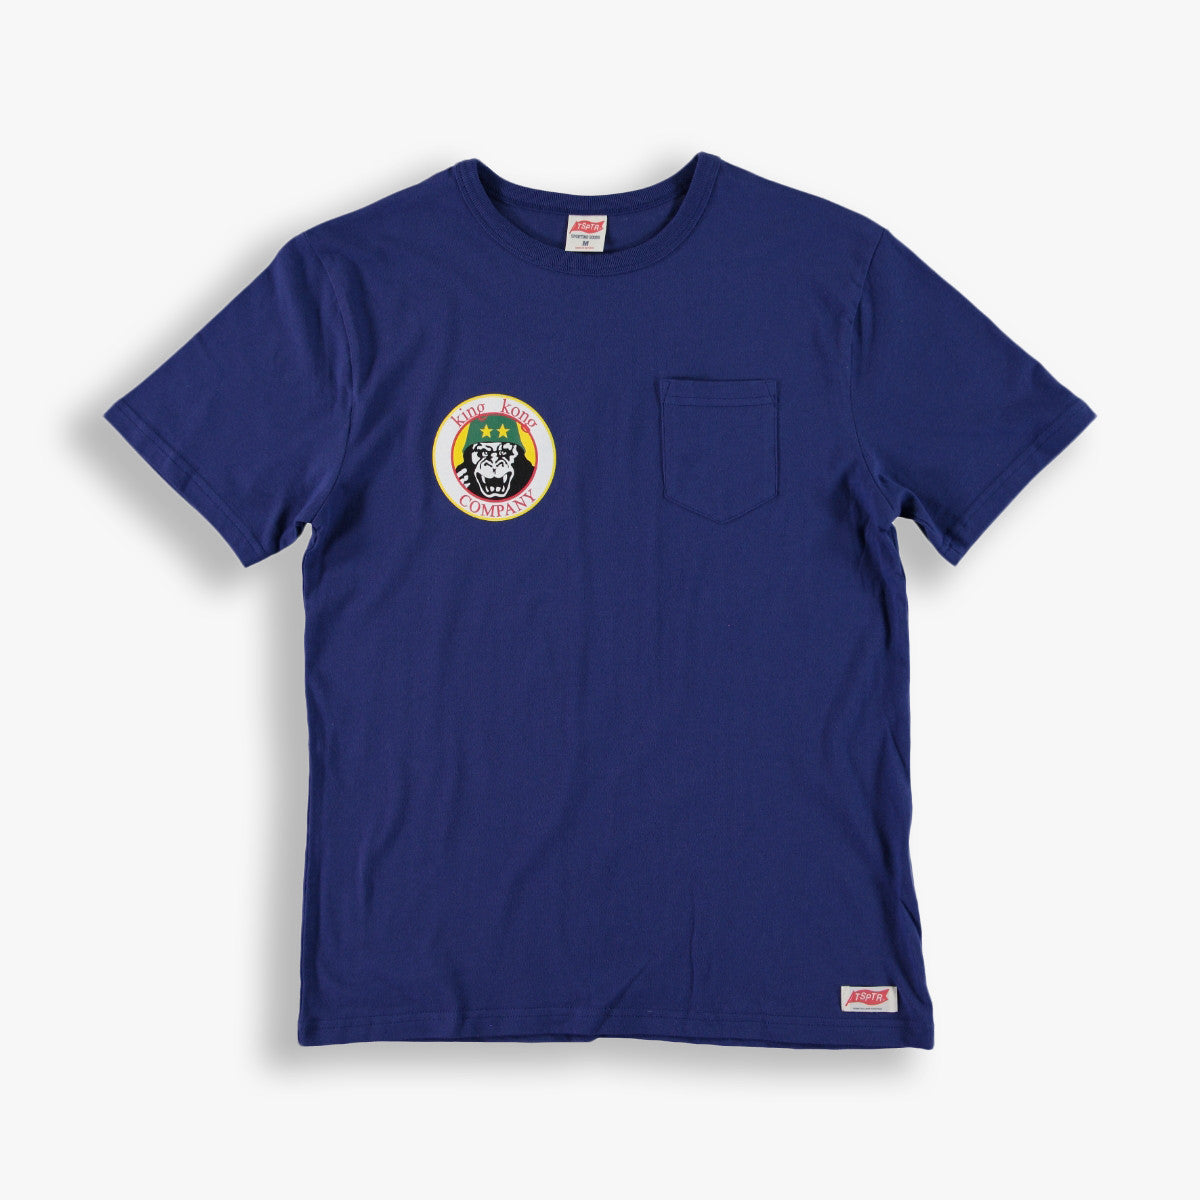 King Kong Co Pocket Tee